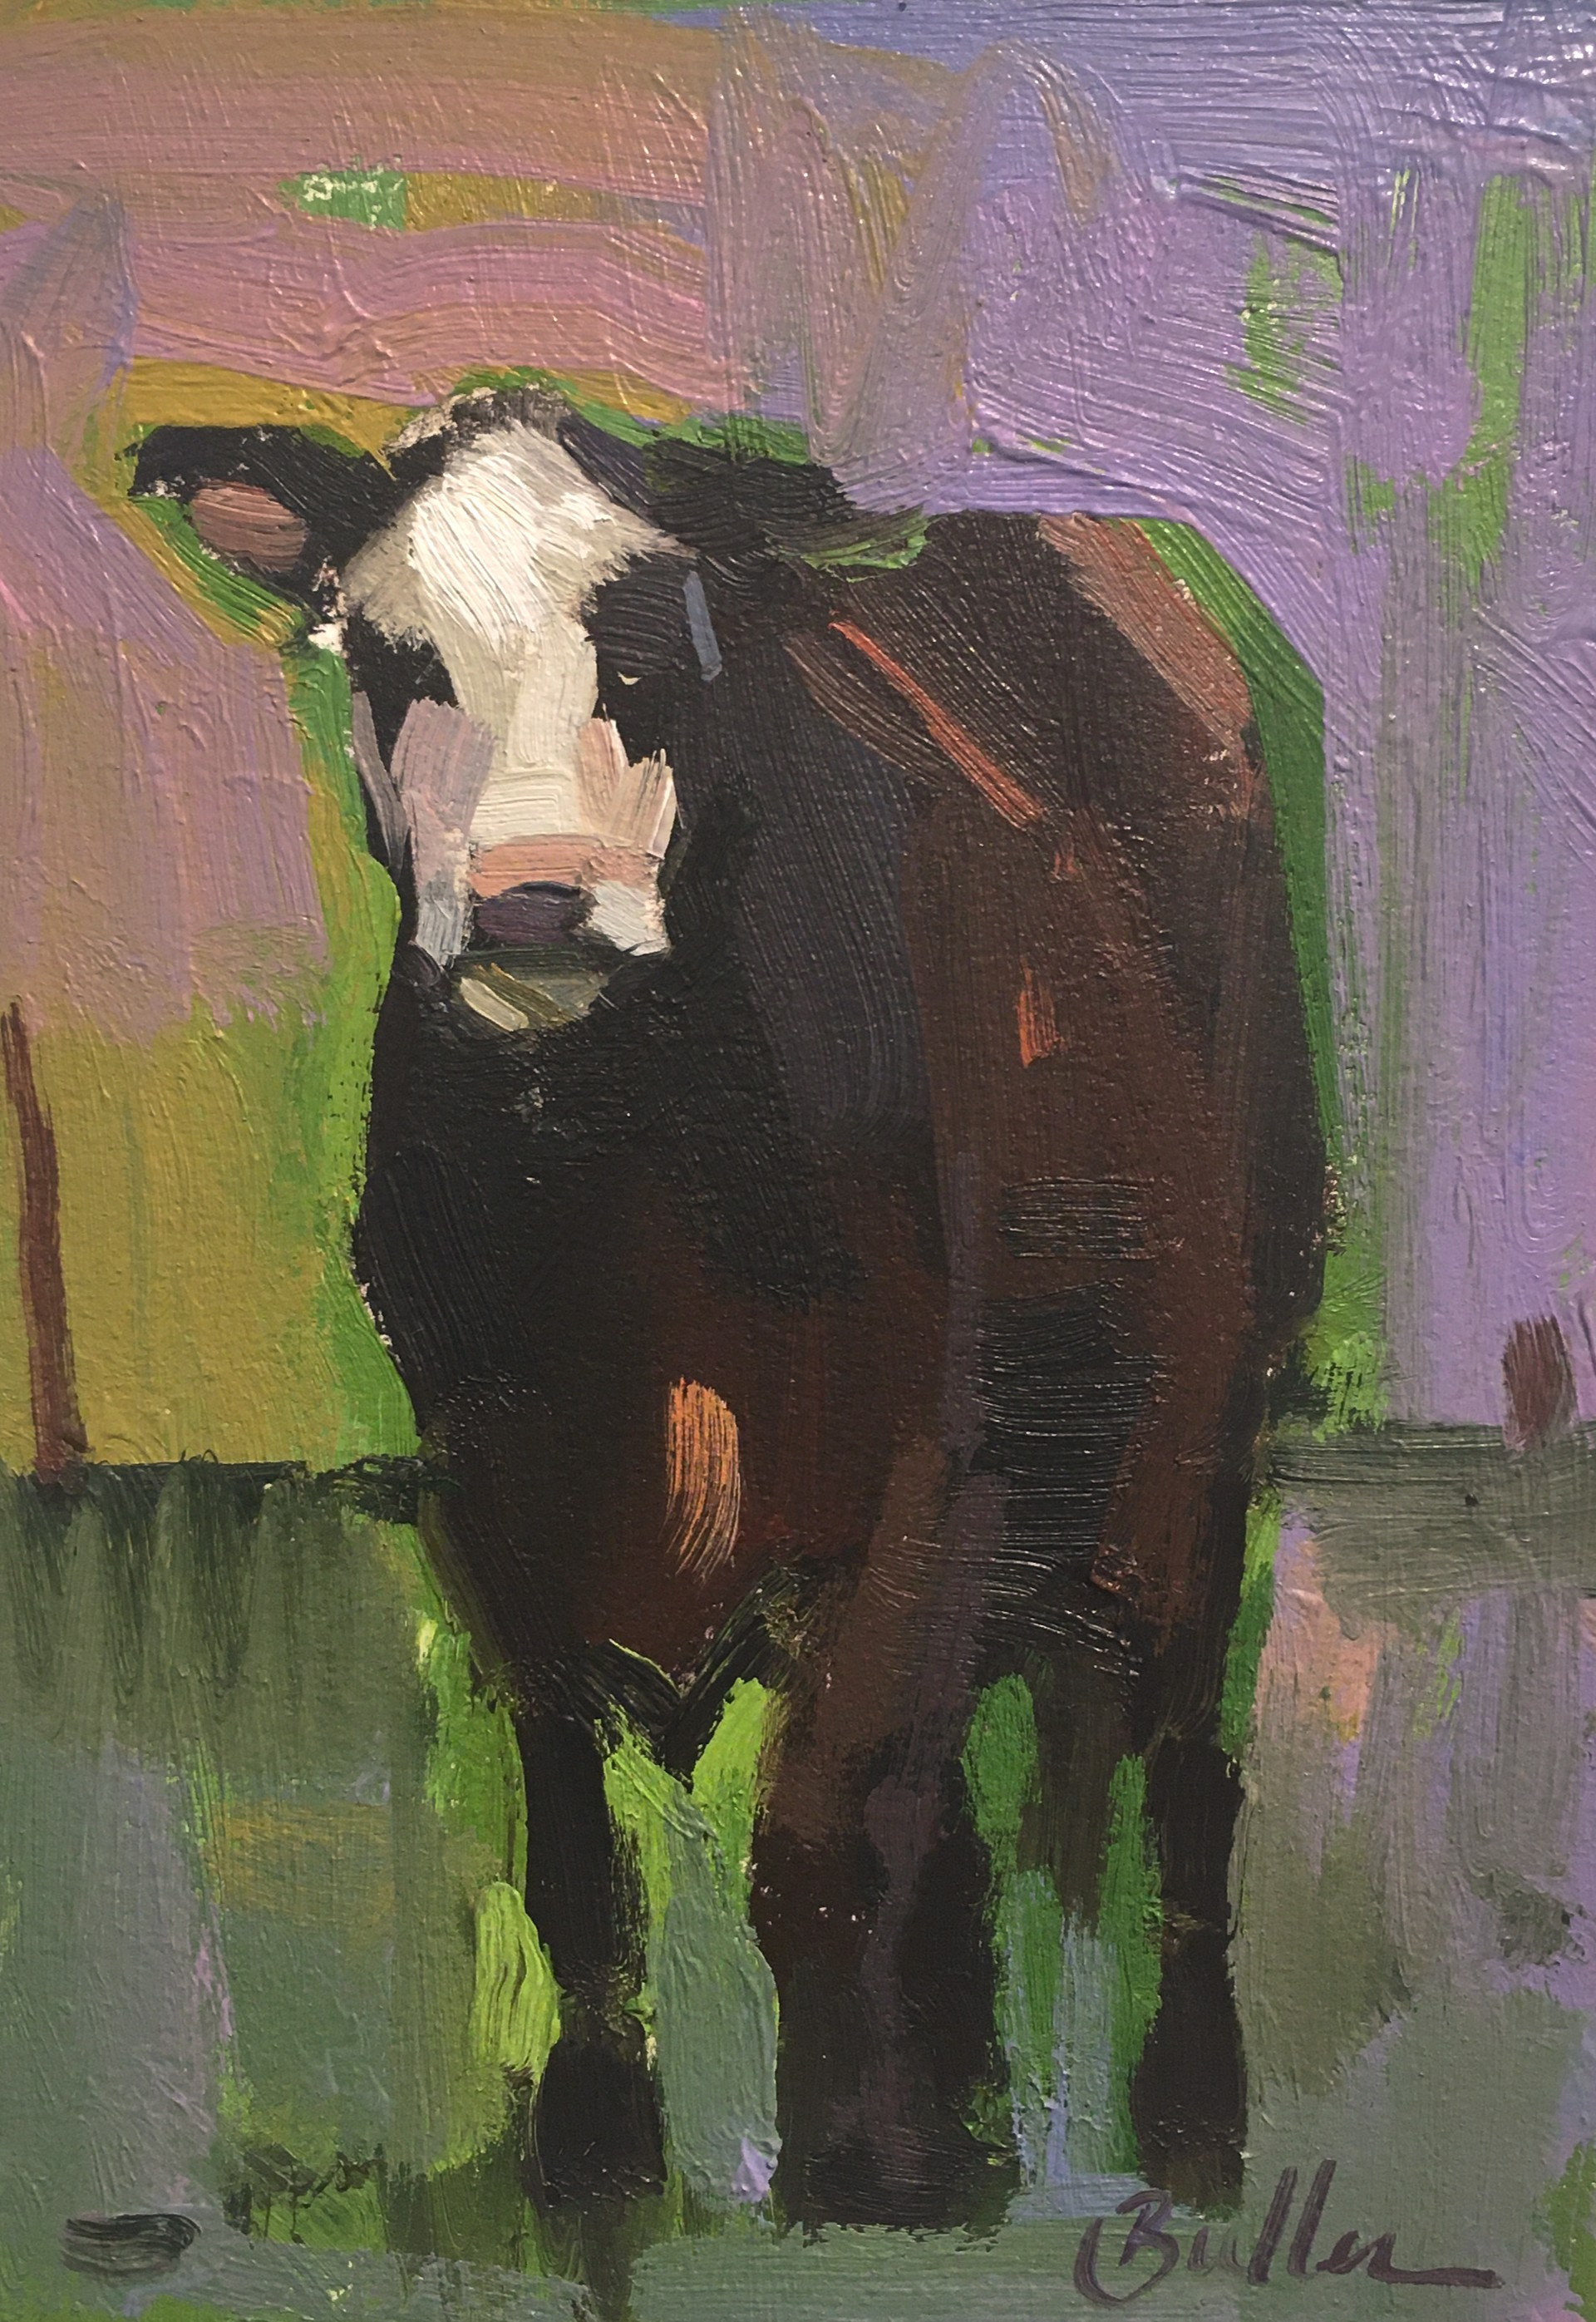 Colorful Cow by Samantha Buller